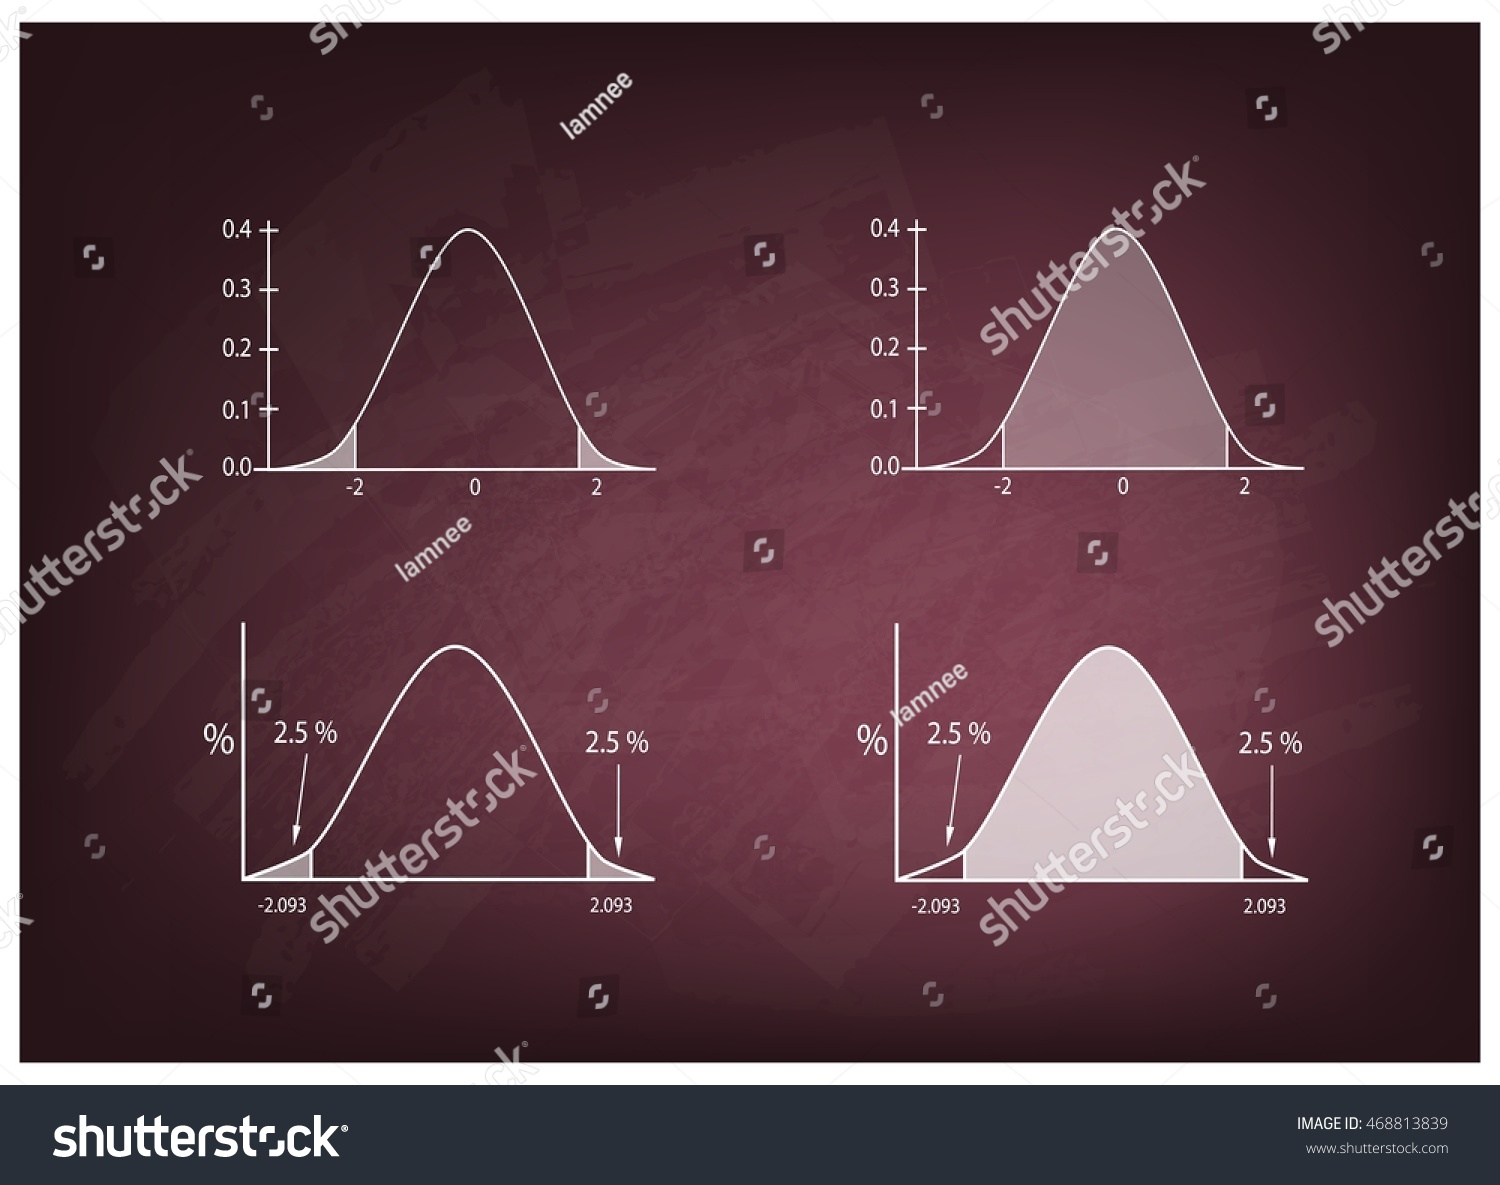 5 tips for understanding standard deviation - Business And Marketing Concepts Illustration Of Standard Deviation Gaussian Bell Or Normal Distribution Curve